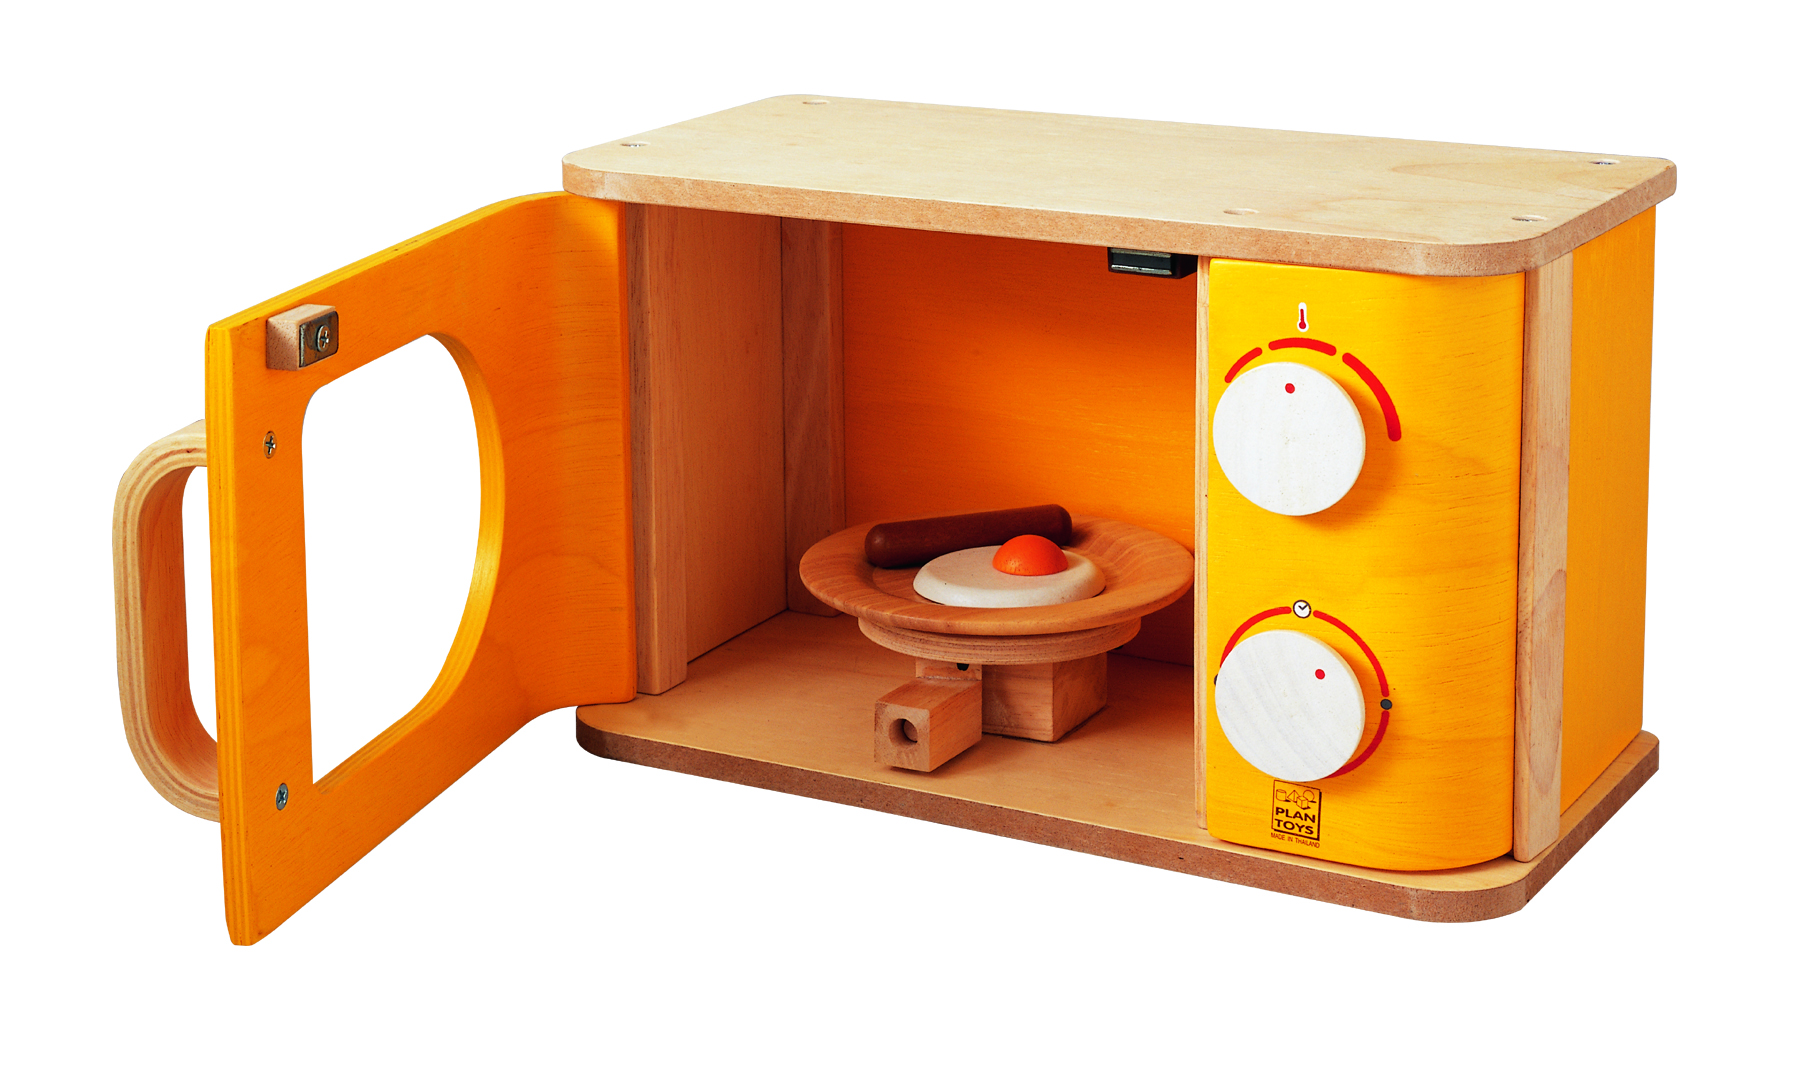 Plan Toys Microwave, Organic, Non-Toxic, Play Kitchen ...